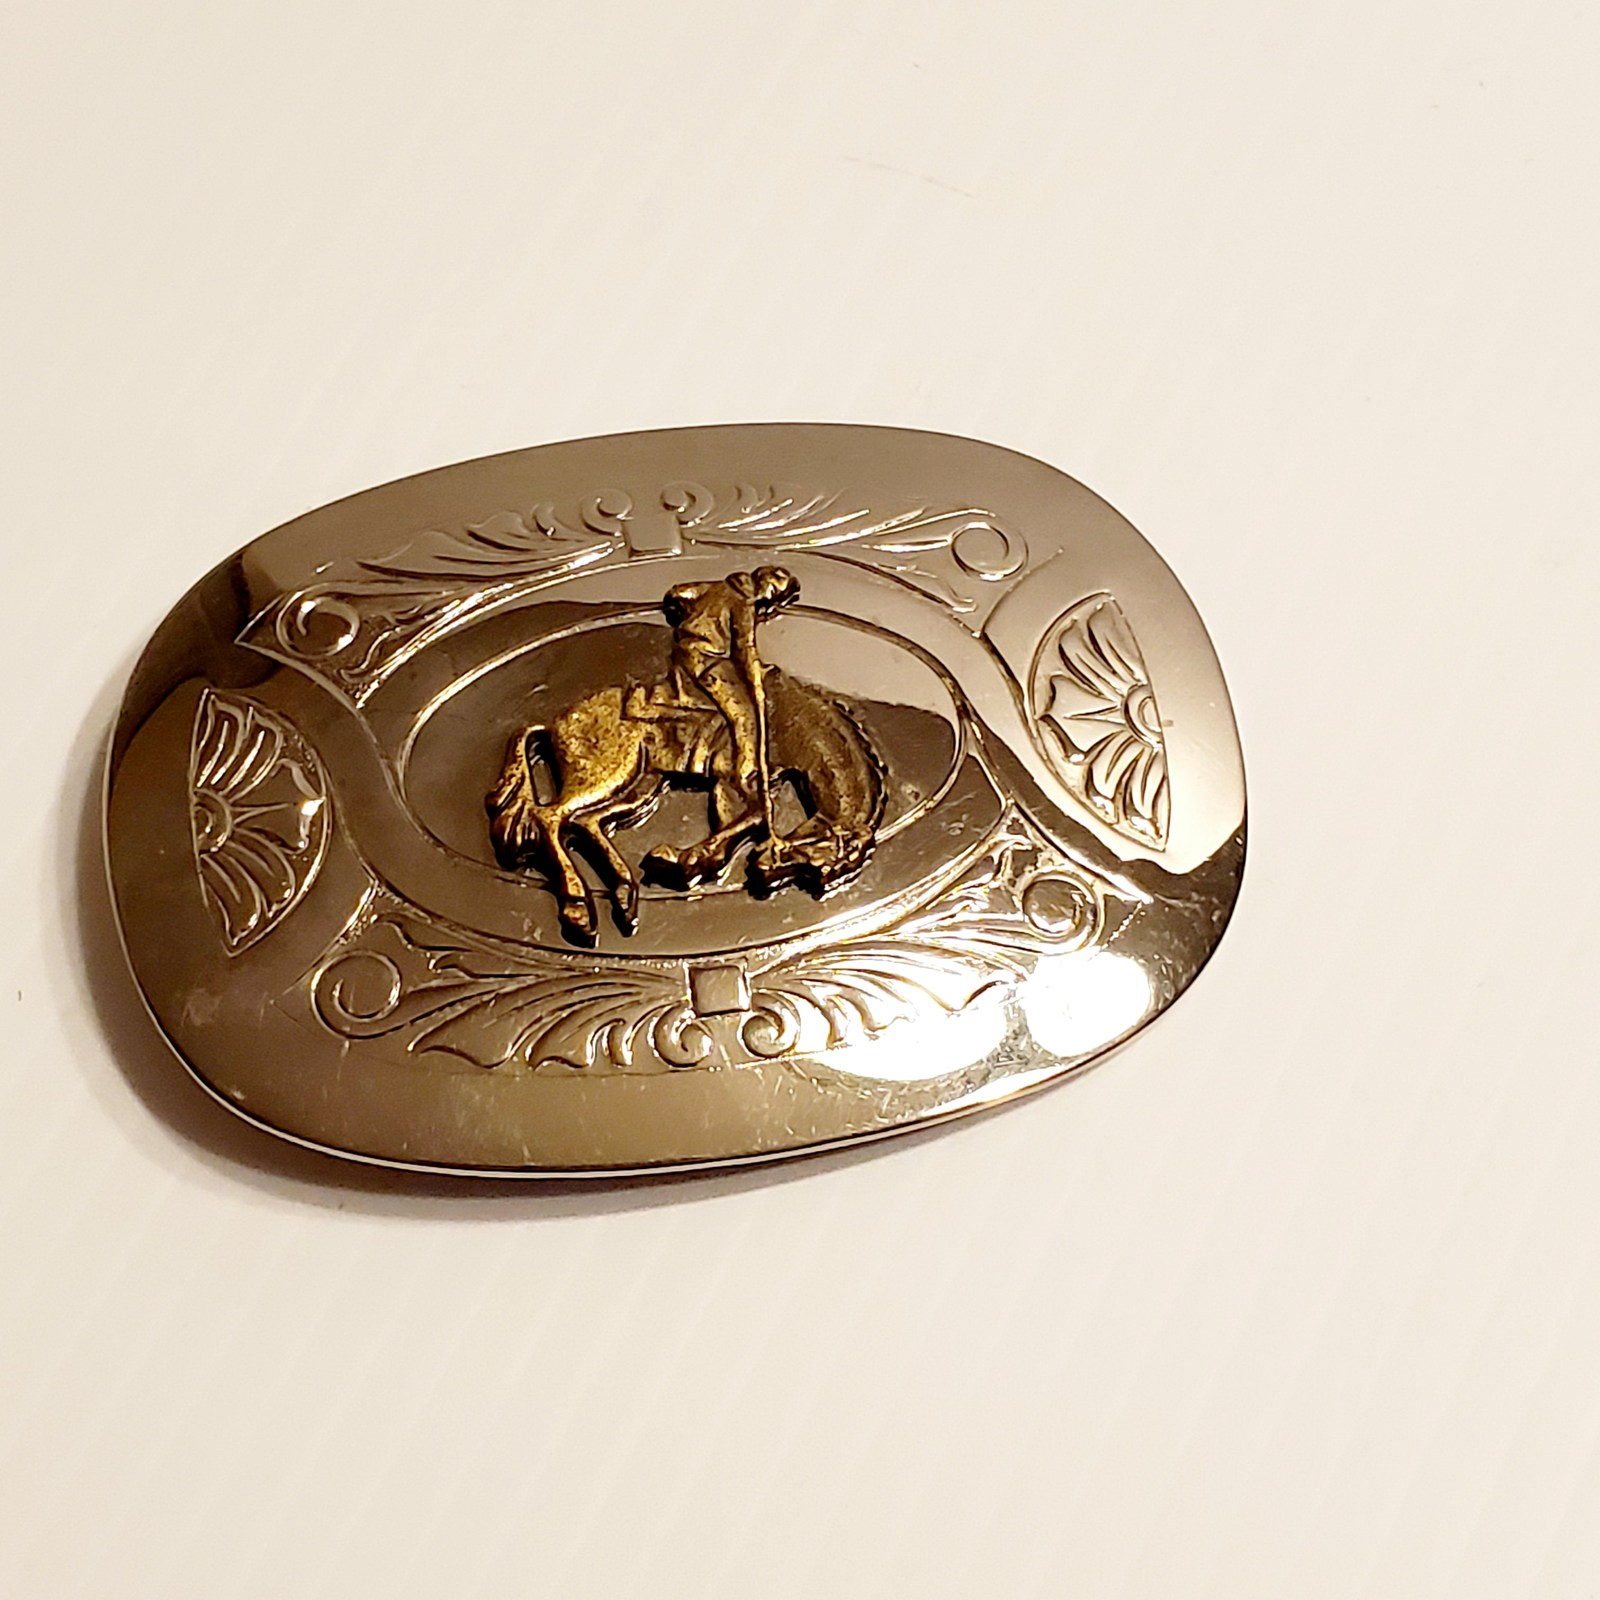 New Vintage Sport Firefighter Western Belt Buckle Boucle also Stock in US